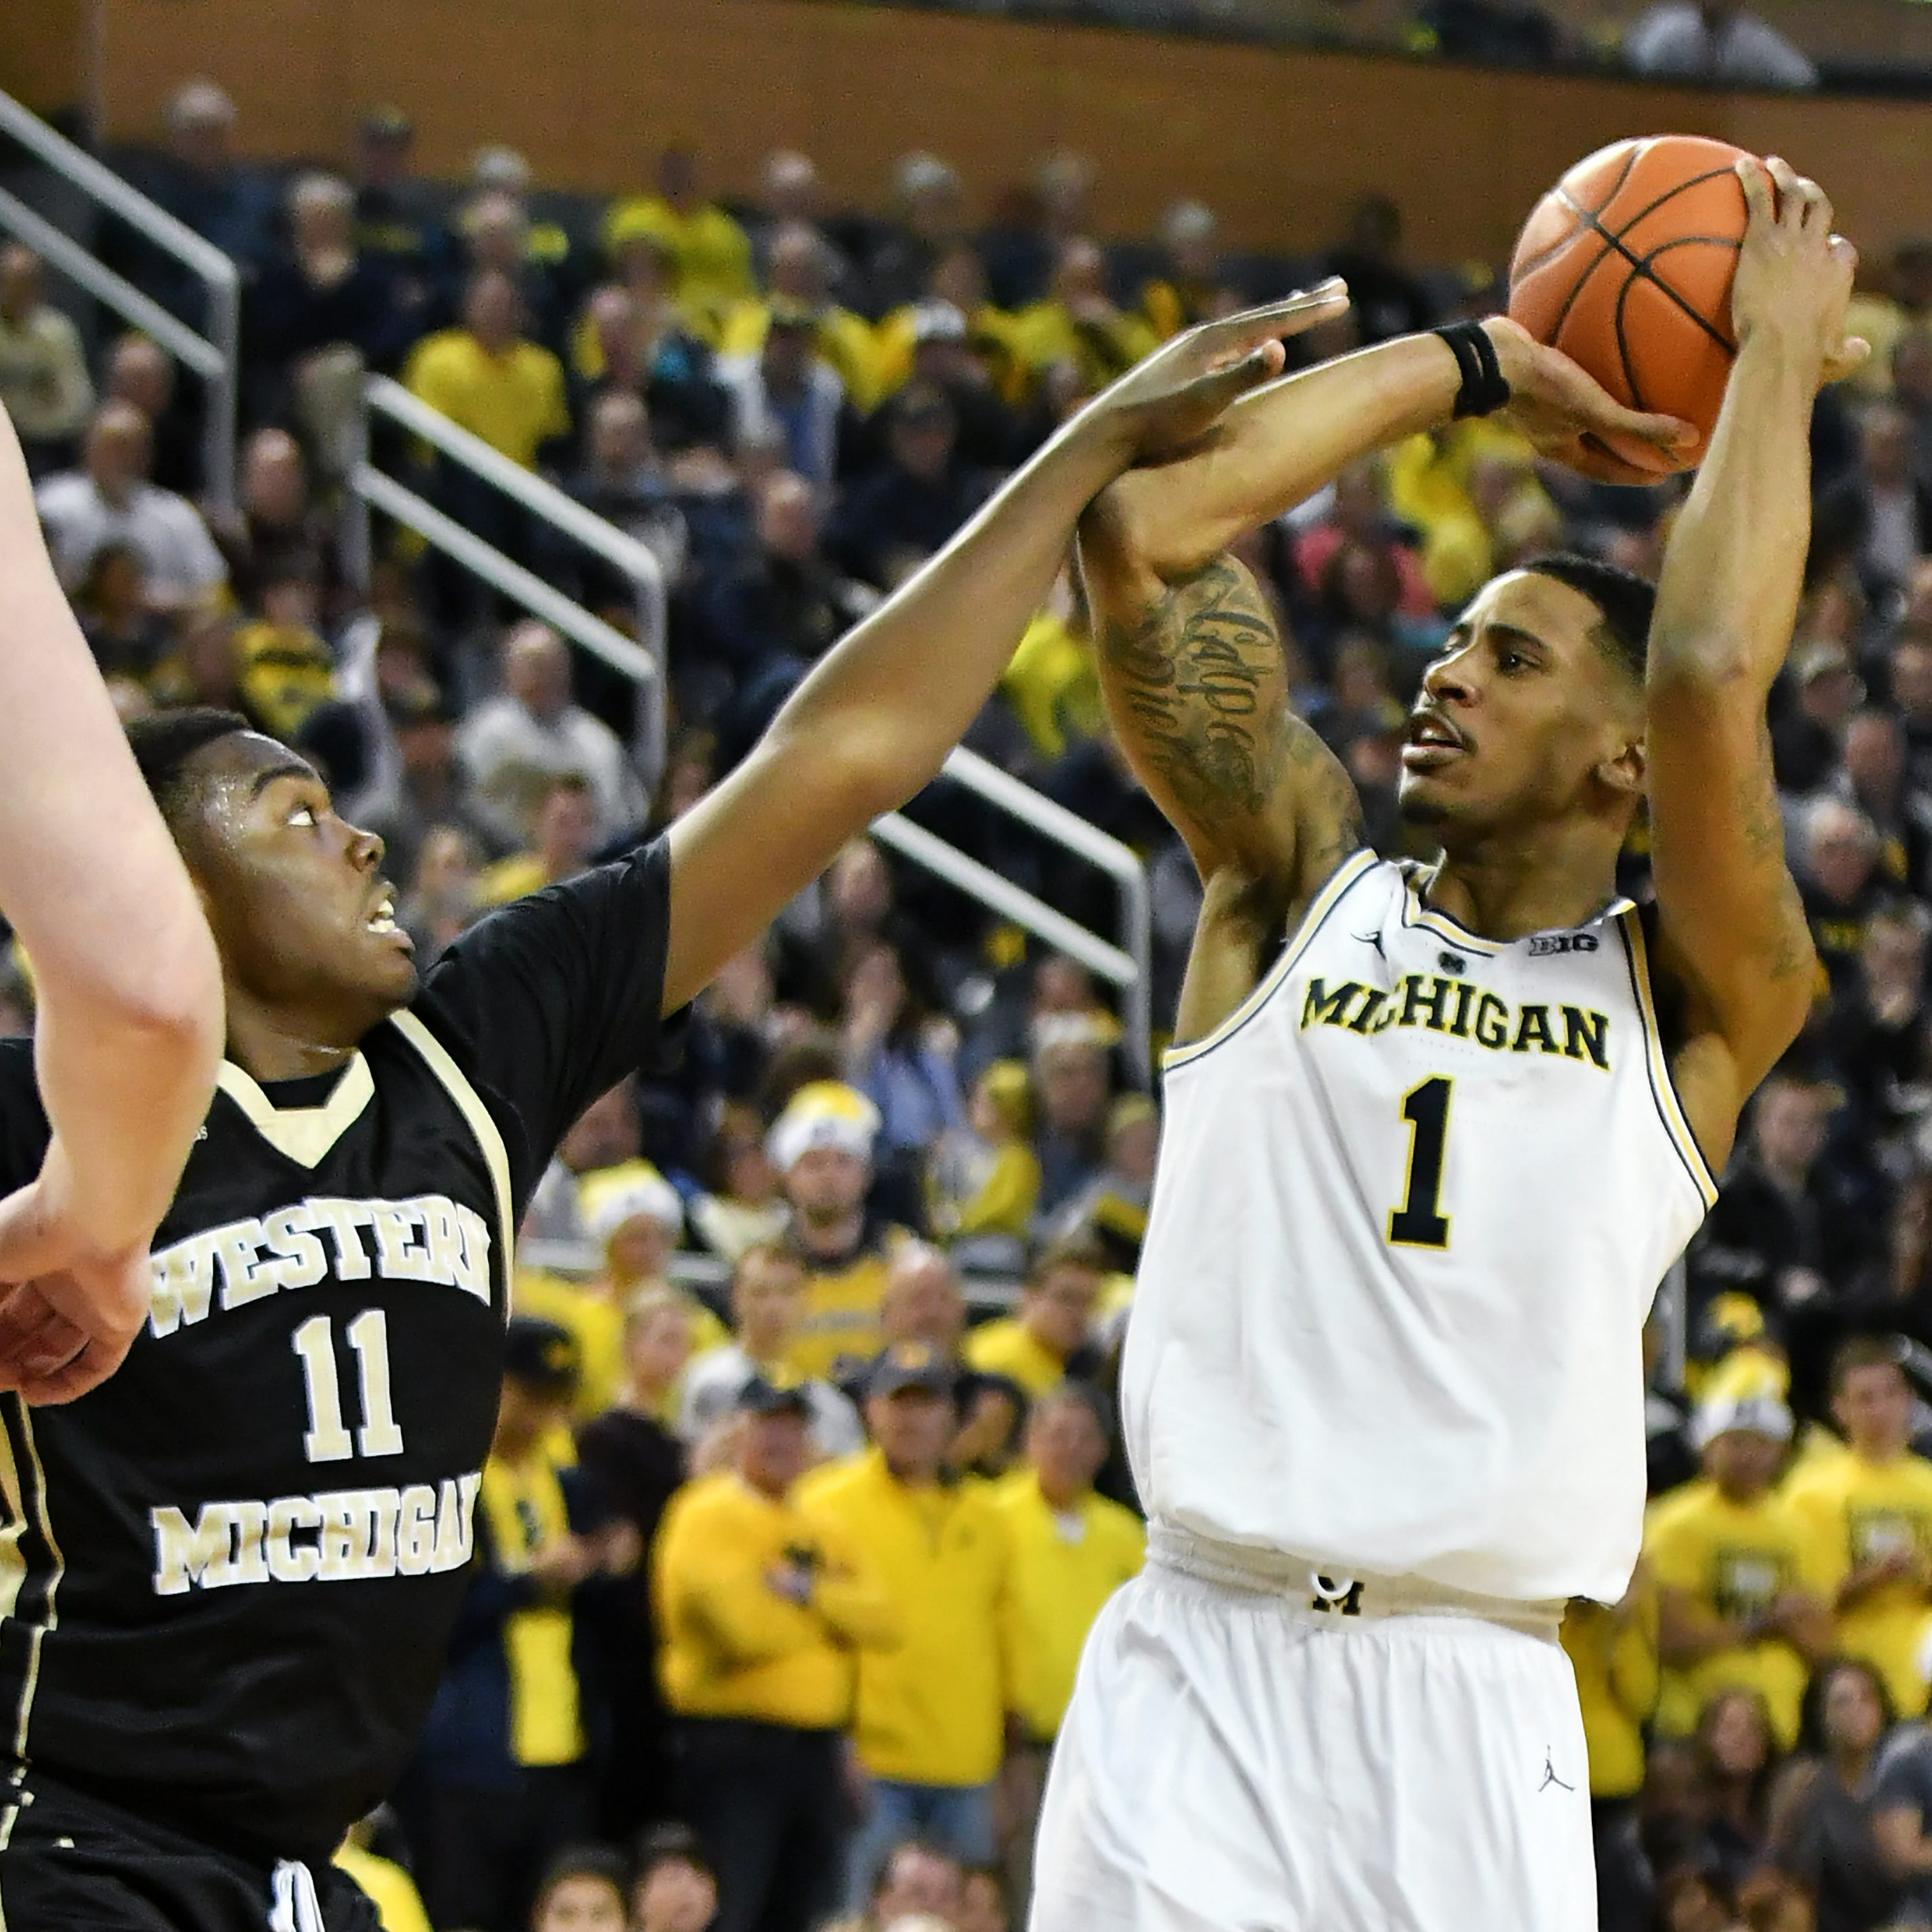 'I was worried': Wolverines make their free throws, to Beilein's relief